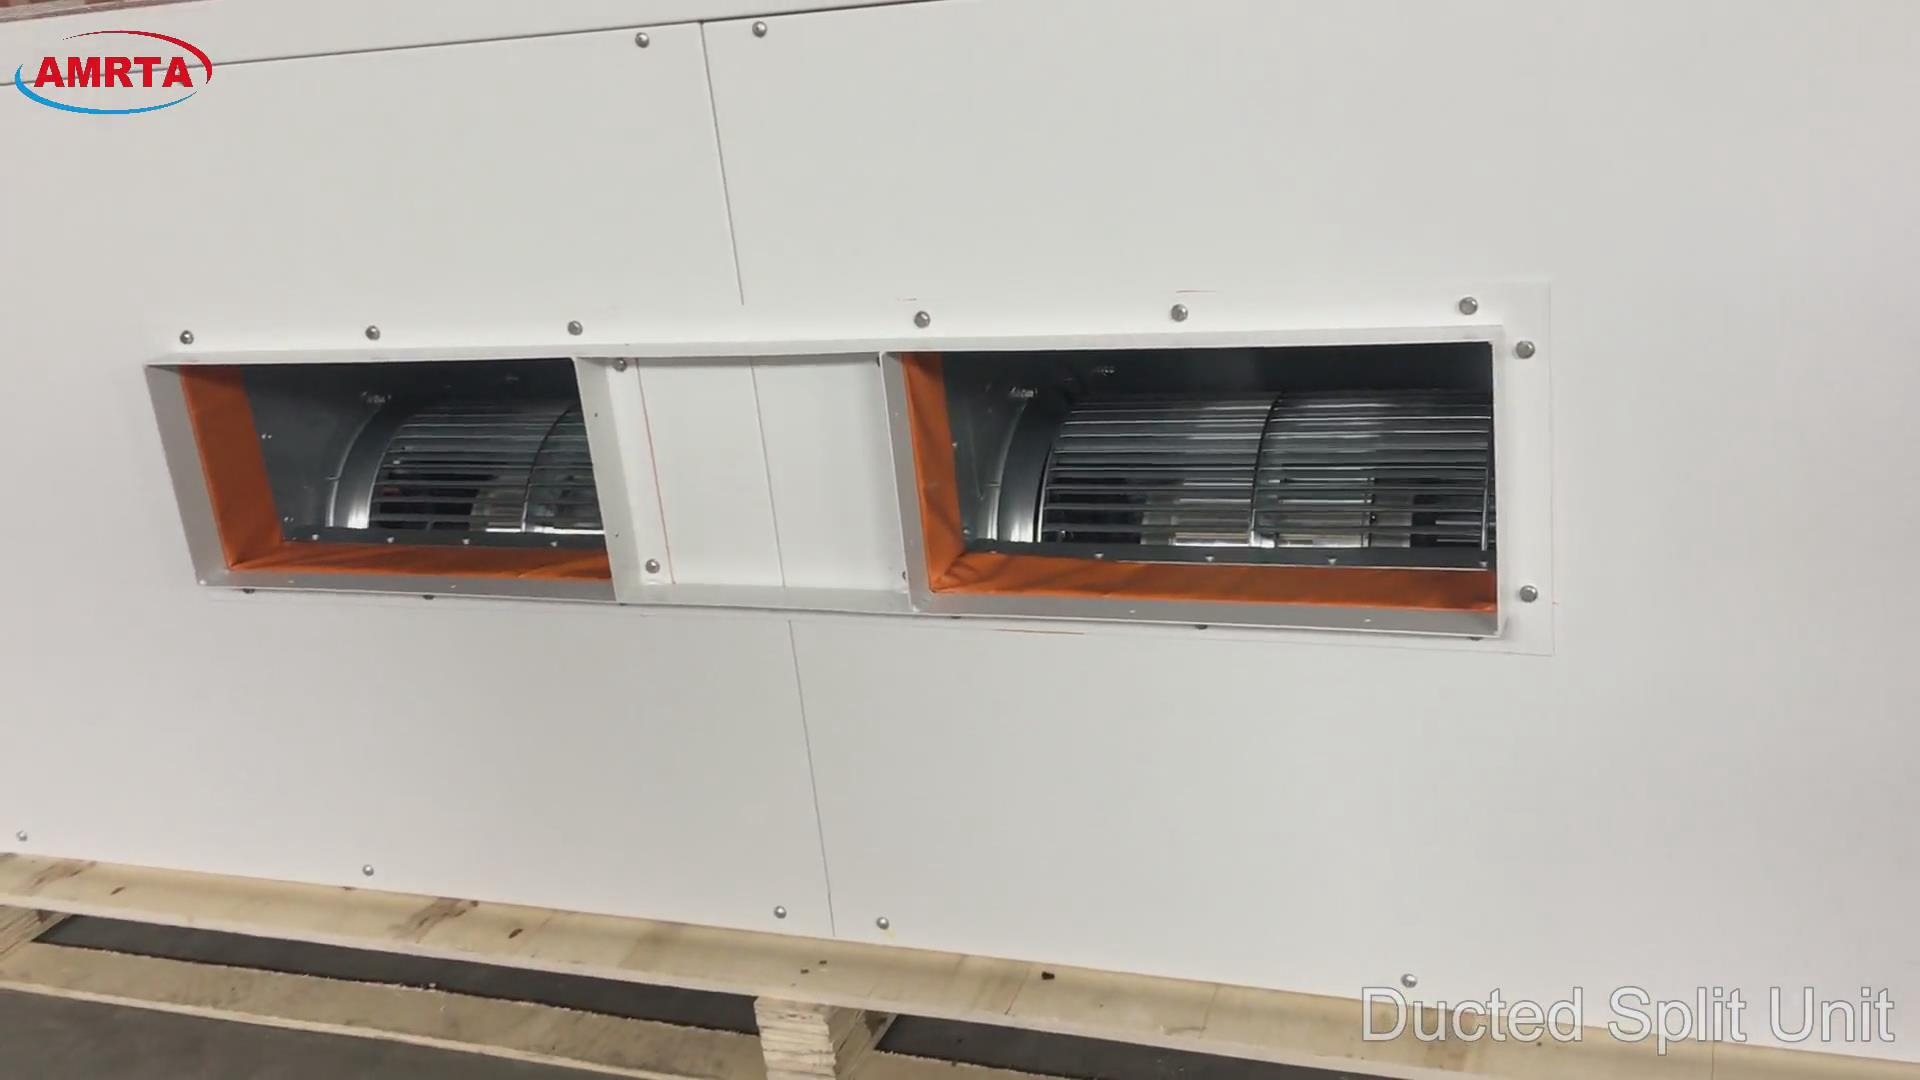 Amrta Ducted Air Conditioning System